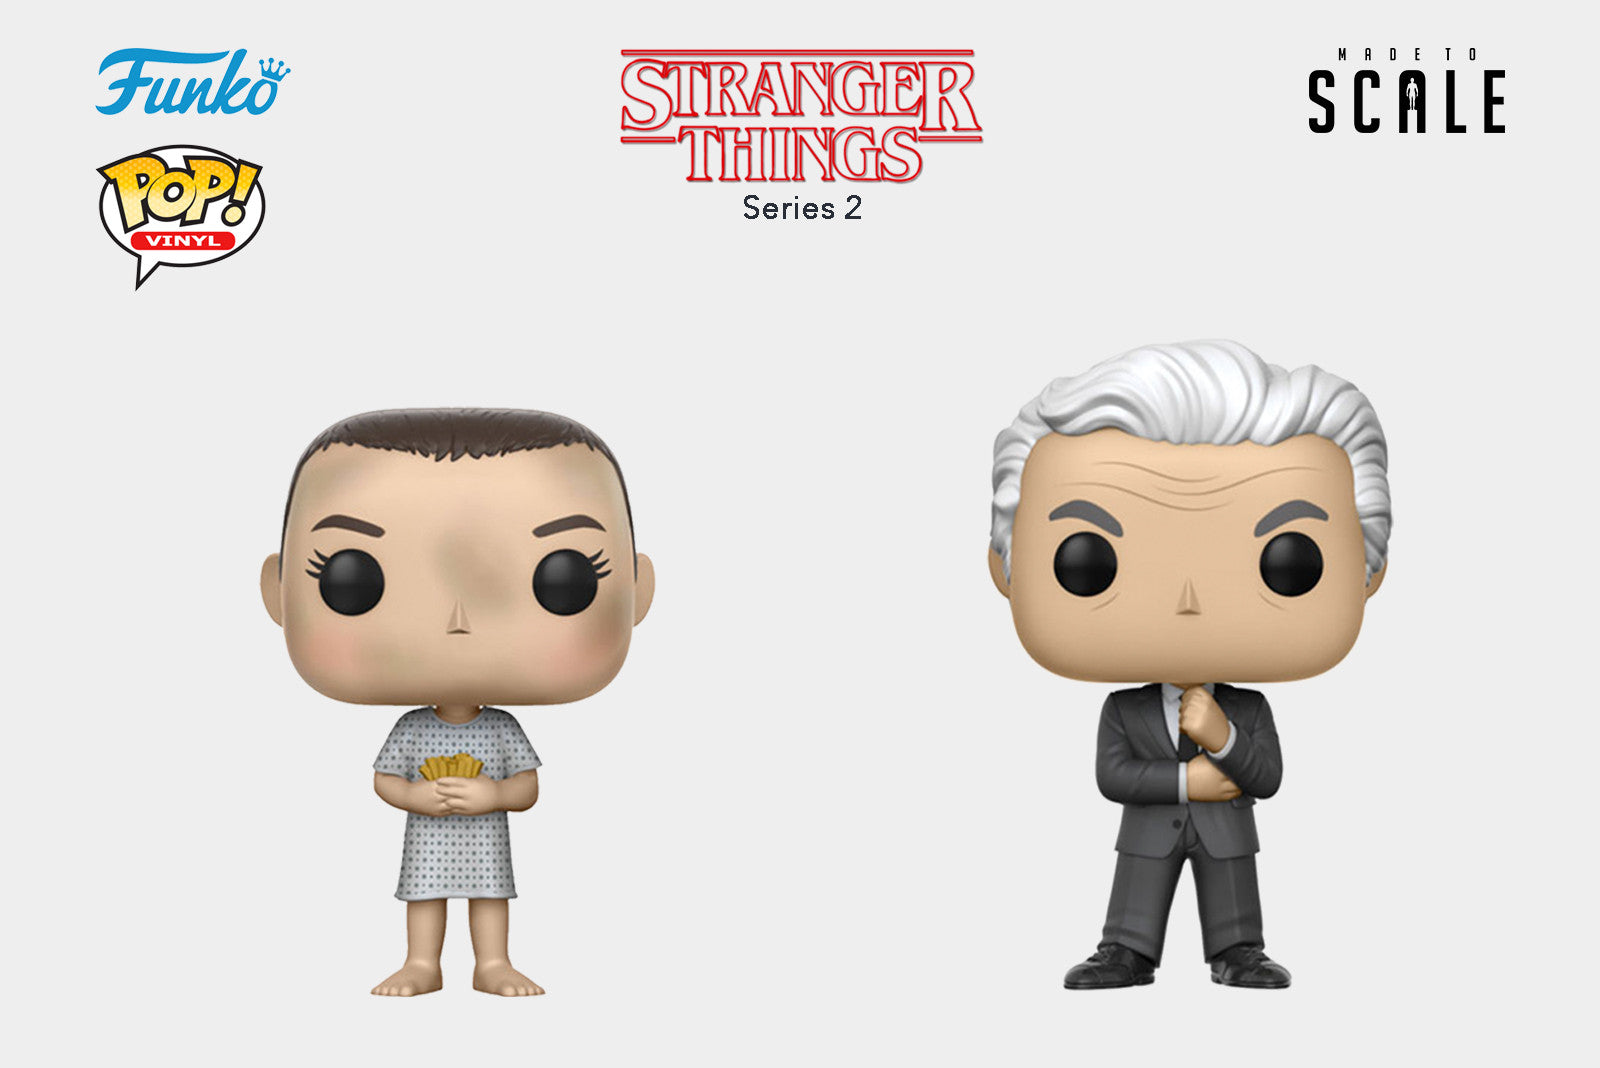 Funko Pop Vinyl Television: Netflix's Stranger Things Series 2 - Release Date: August 2017